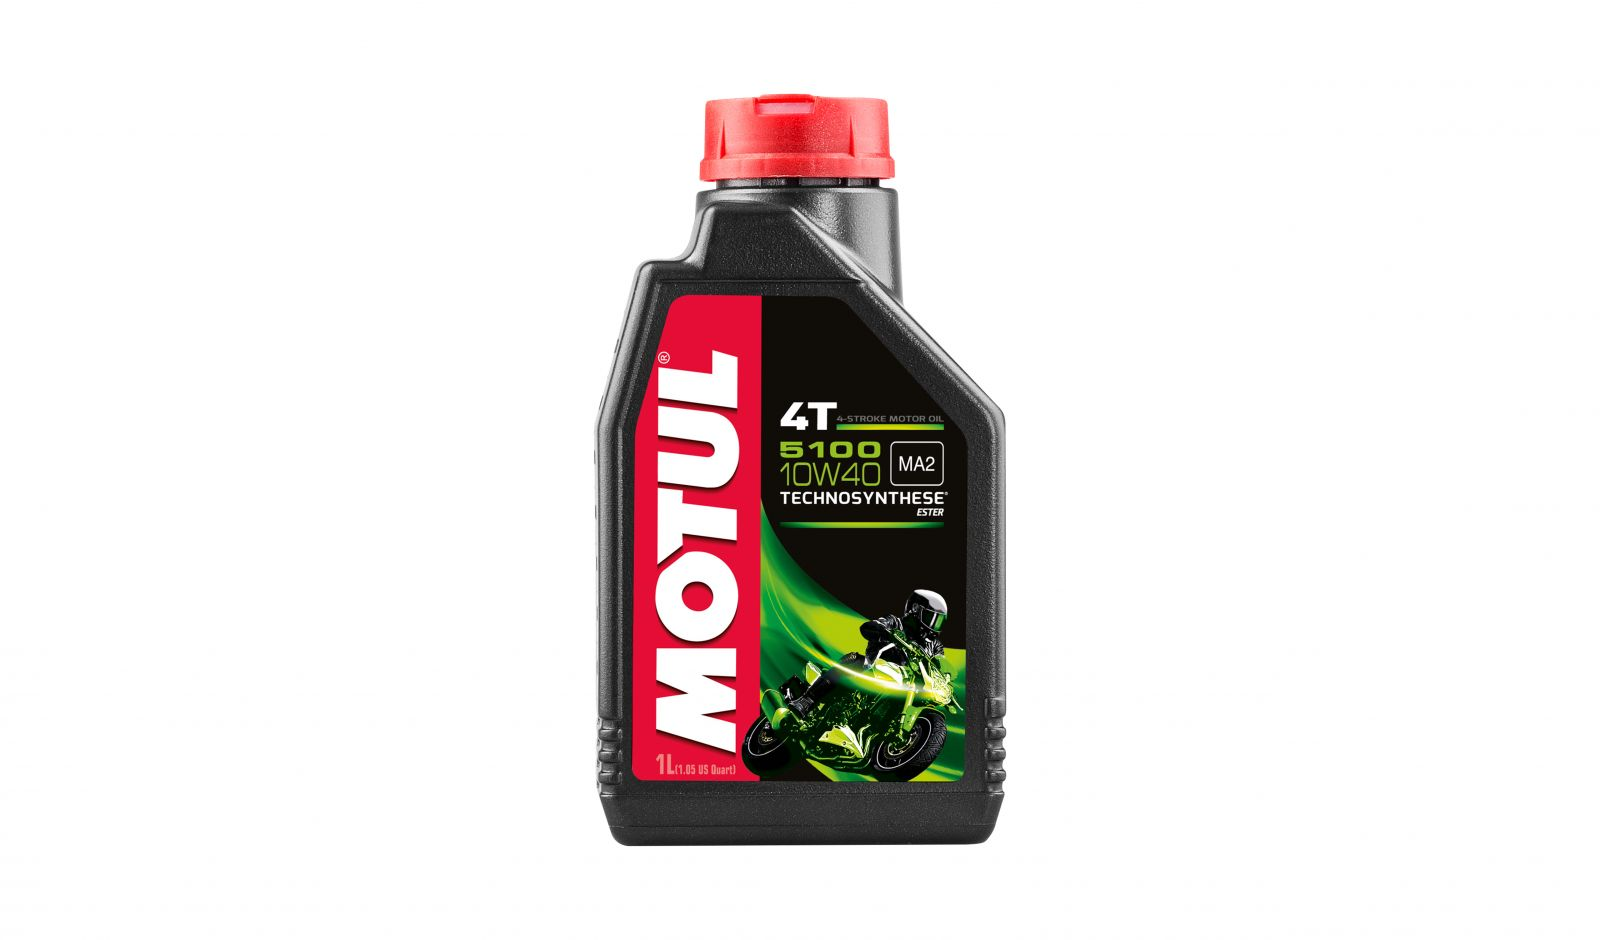 4 stroke engine oils - 670141M image